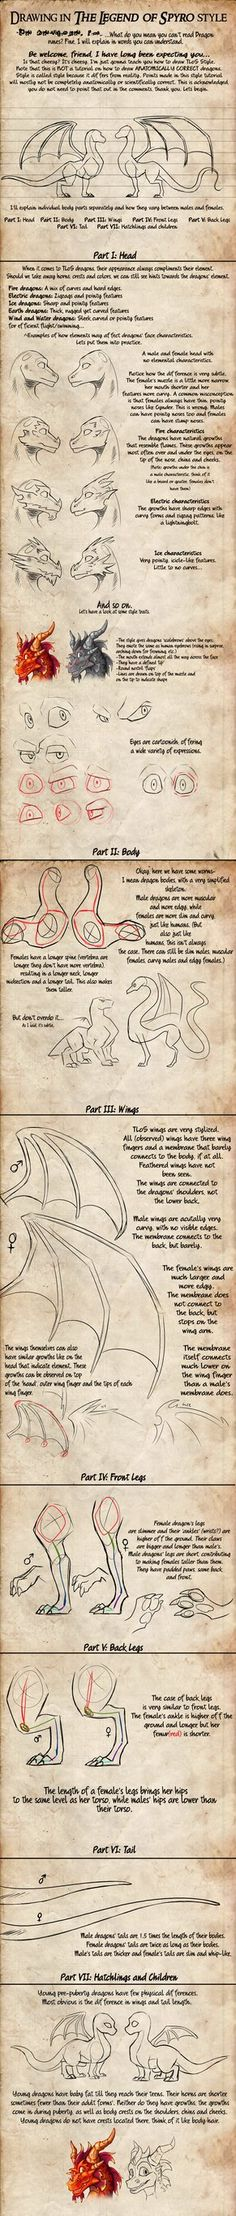 How to draw a dragon.